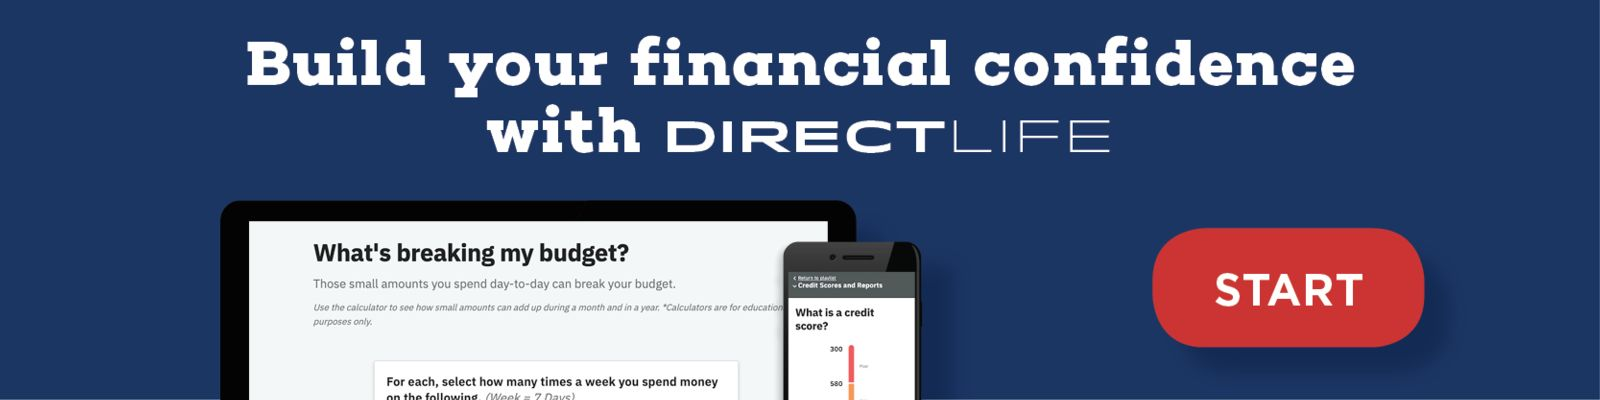 "Banner states to ""Build your financial confidence with DirectLife"", click to start"